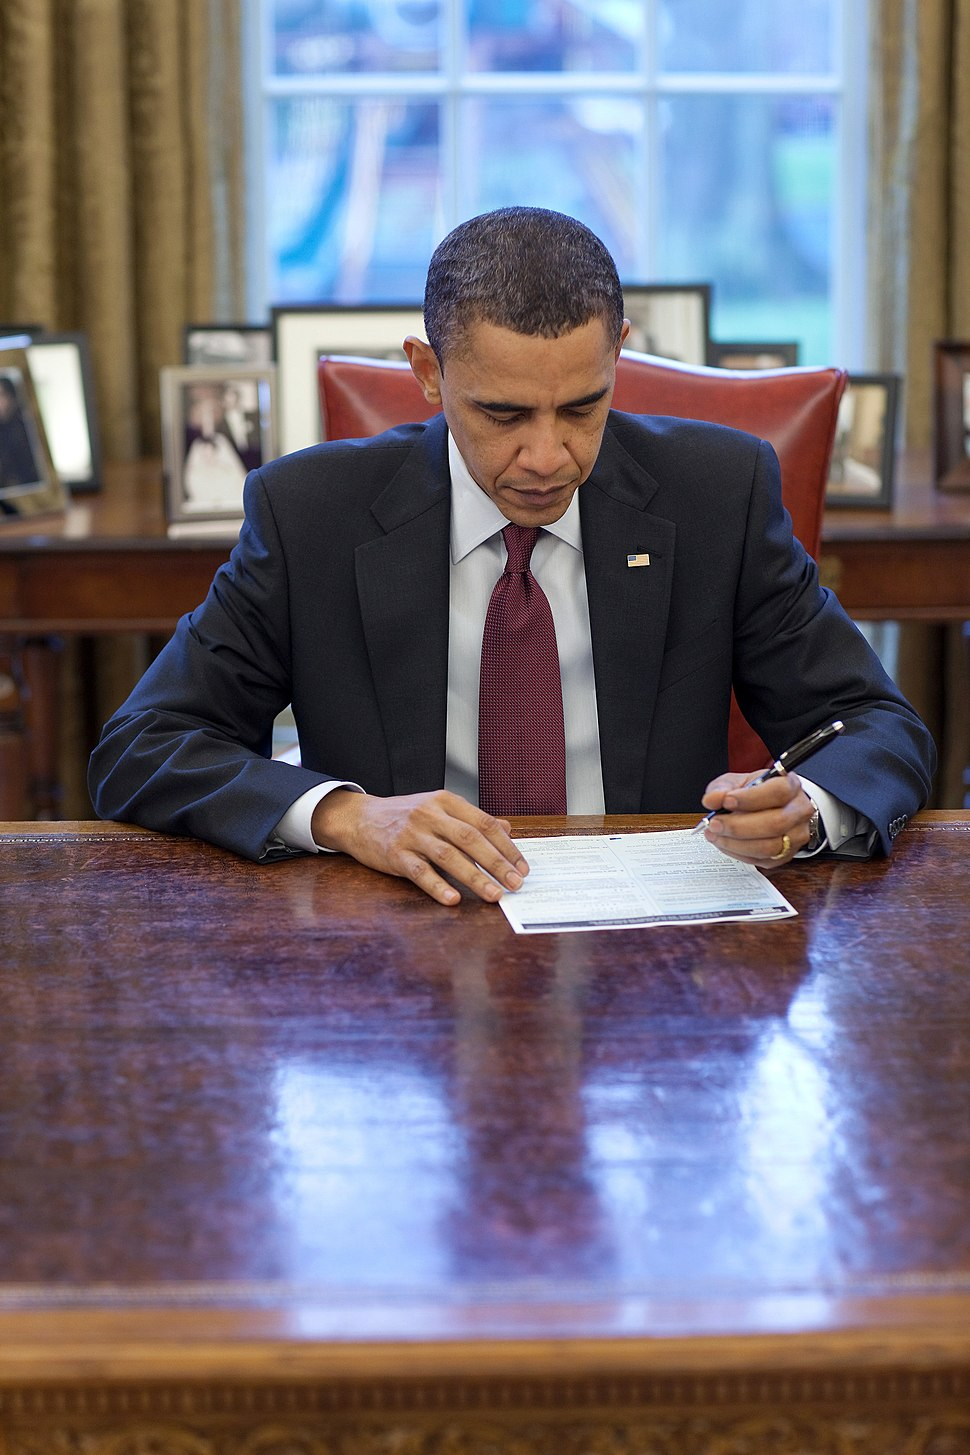 President Barack Obama fills out his 2010 Census form in the Oval Office